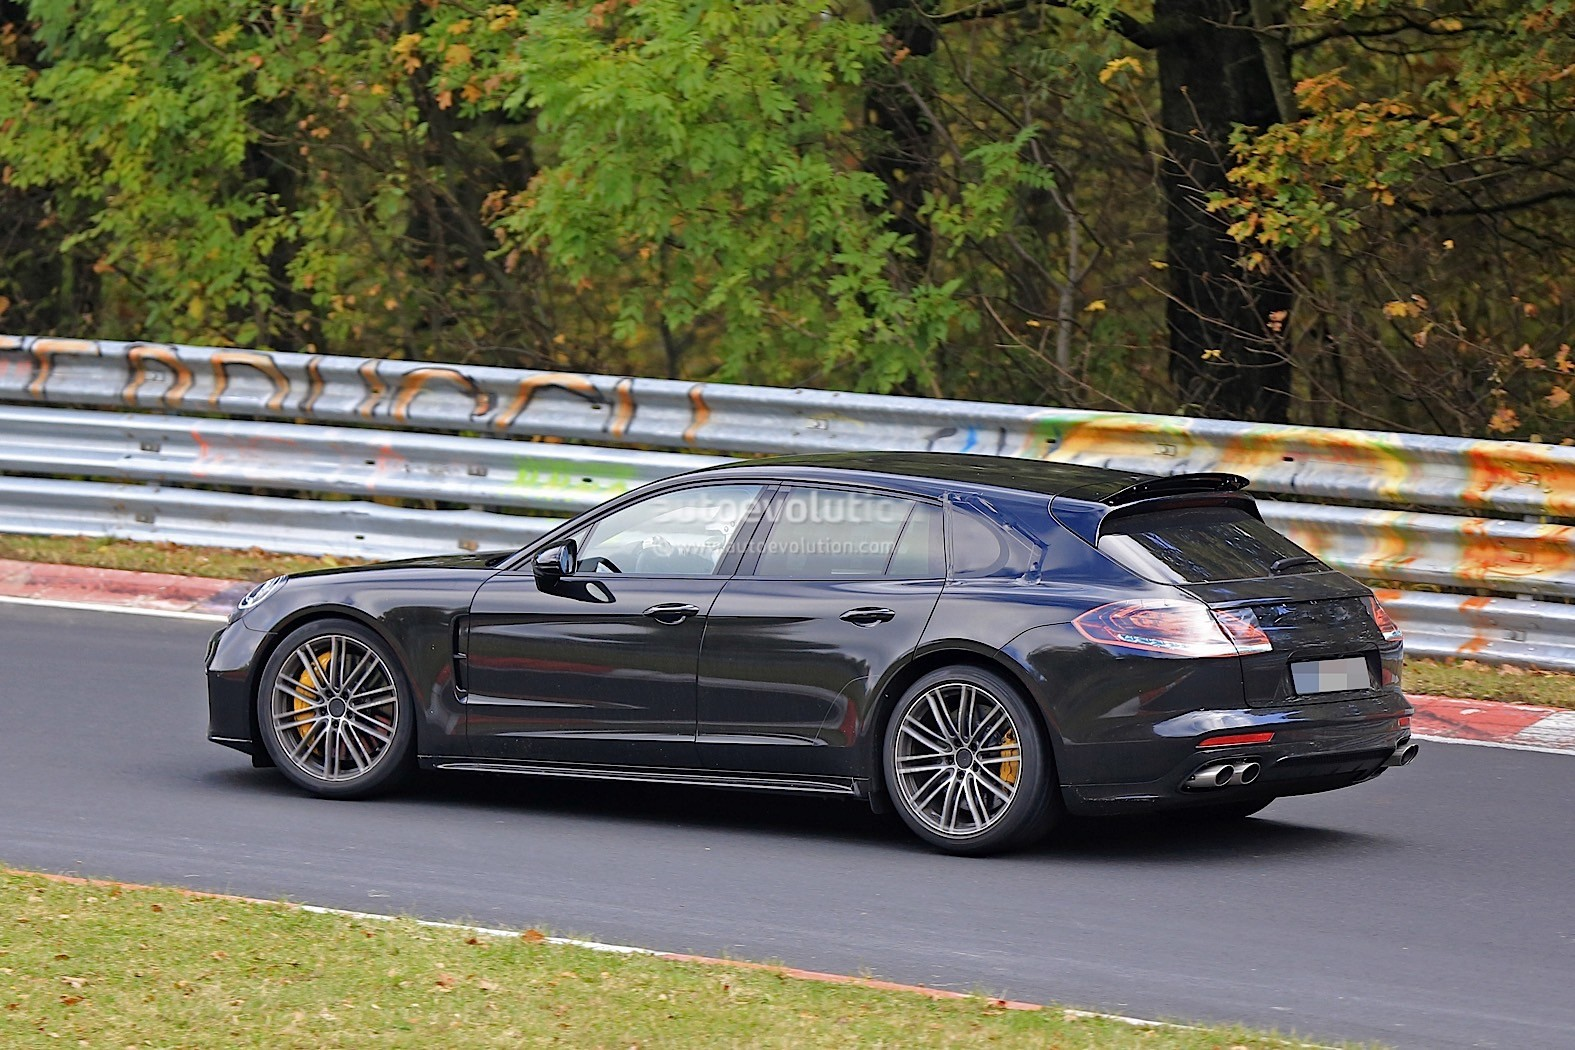 2018 Porsche Panamera Sport Turismo Wagon Spotted With Retractable Spoiler Autoevolution